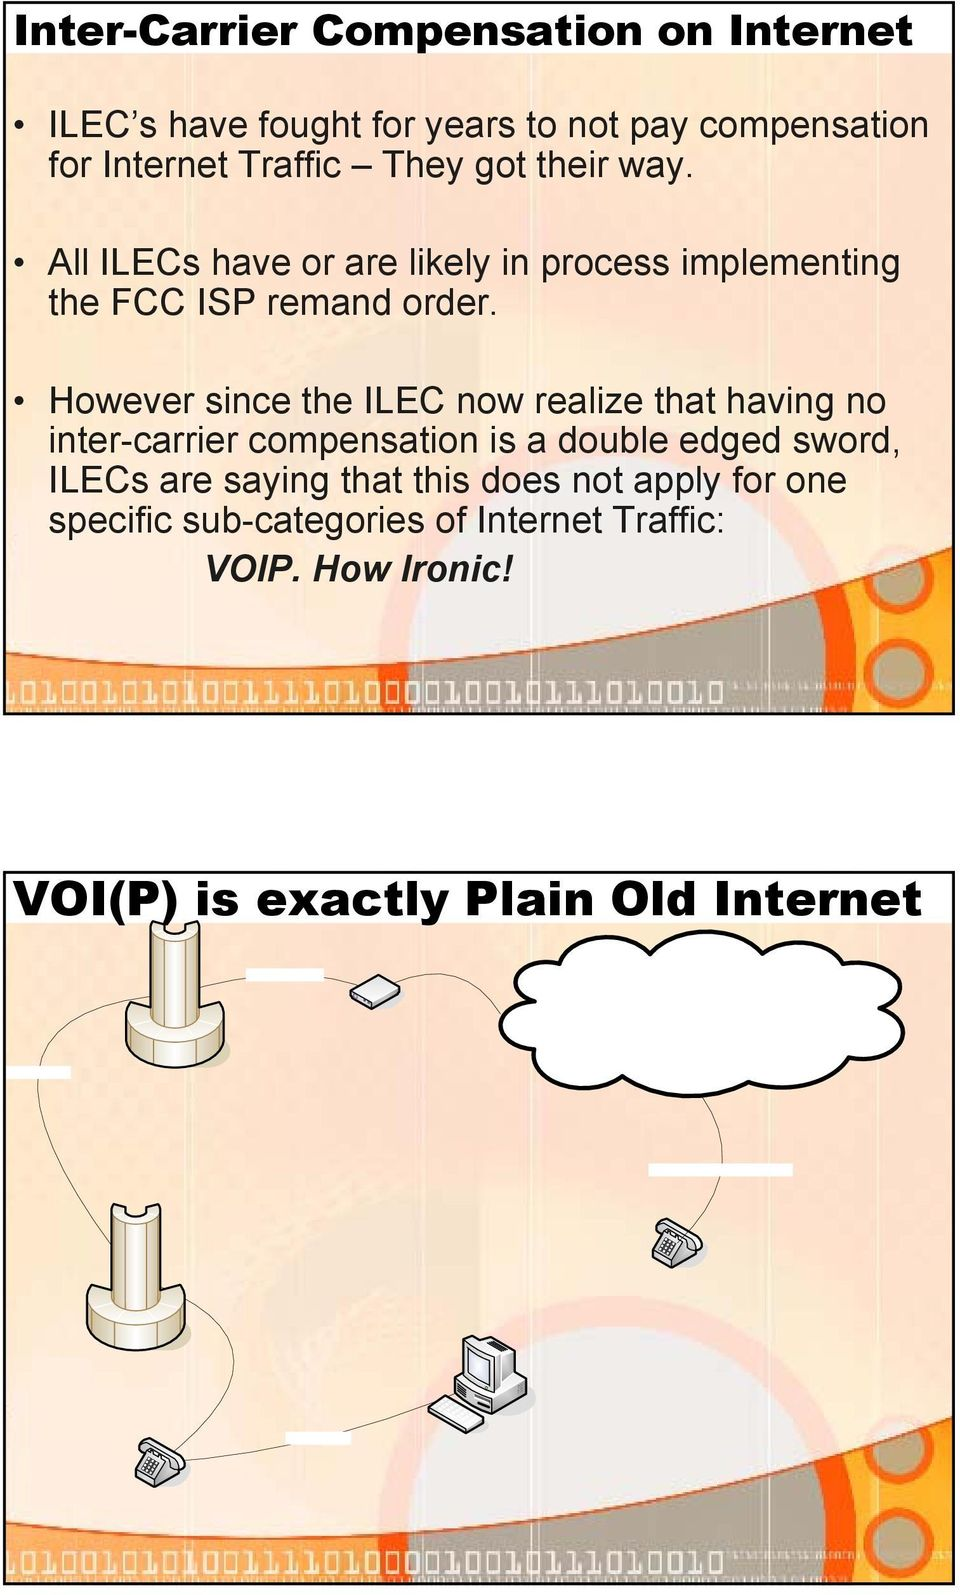 However since the ILEC now realize that having no inter-carrier compensation is a double edged sword, ILECs are